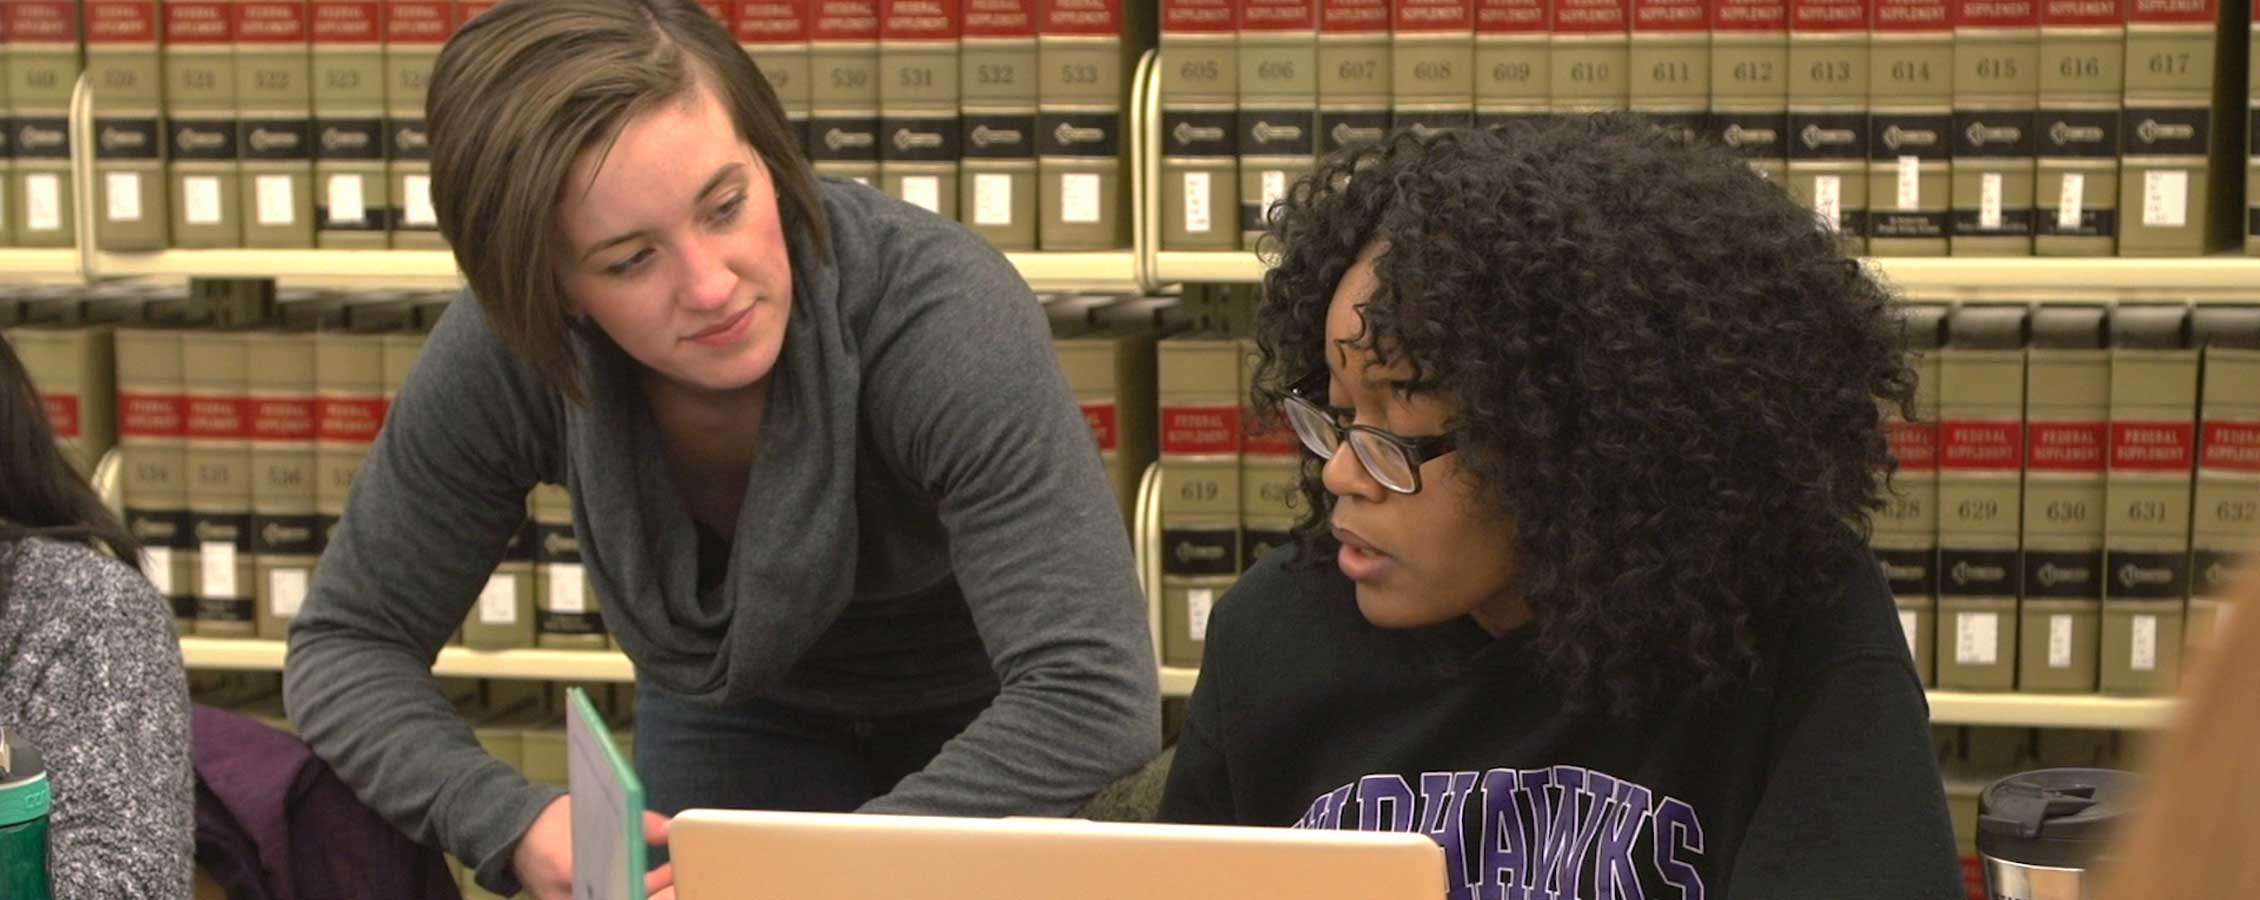 UW-Whitewater launches a new major in legal studies